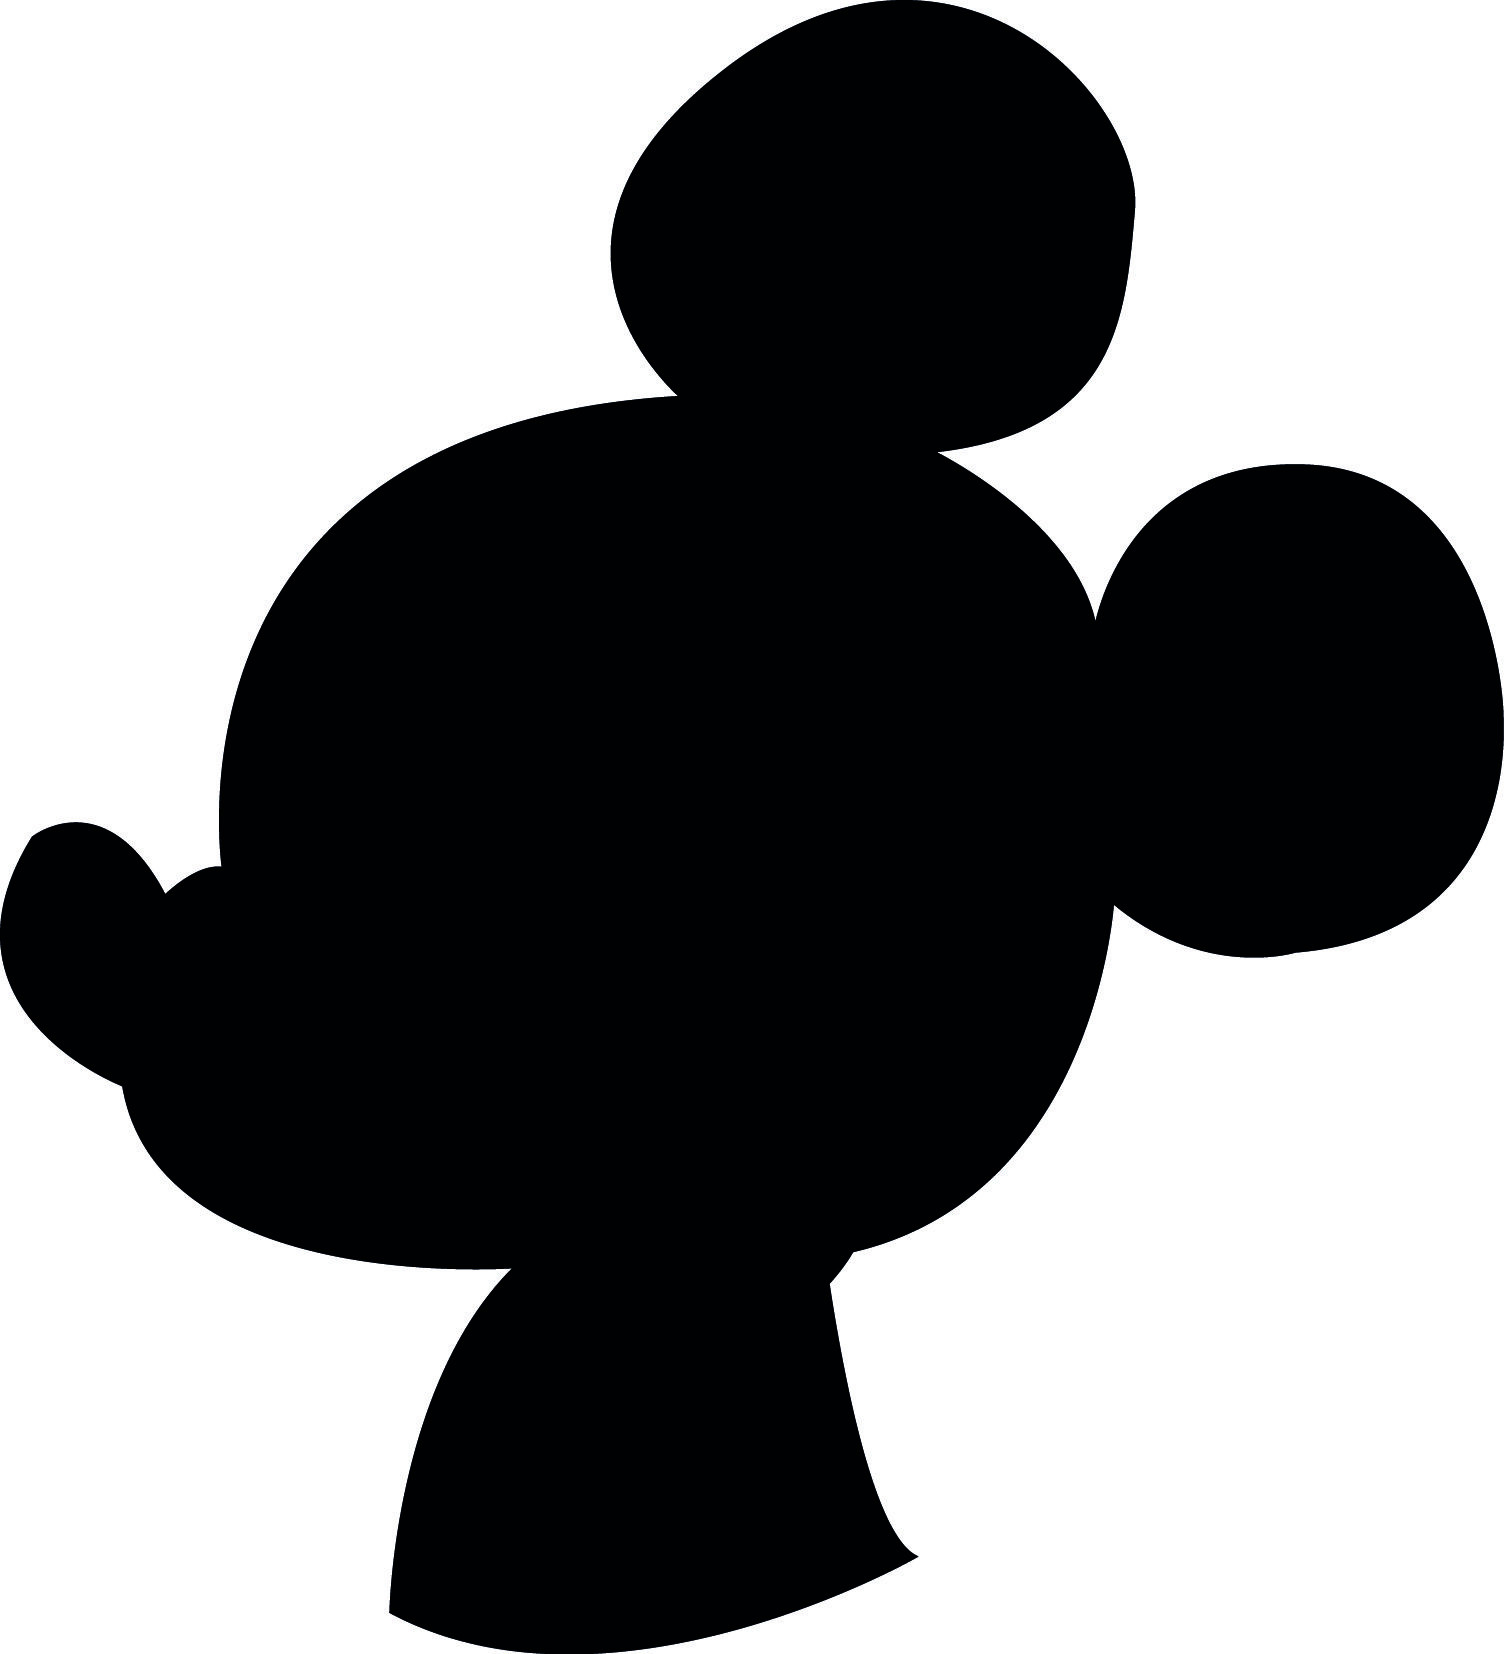 1504x1654 Downloadable Disney Mickey Donald And Goofy Silhouettes Food